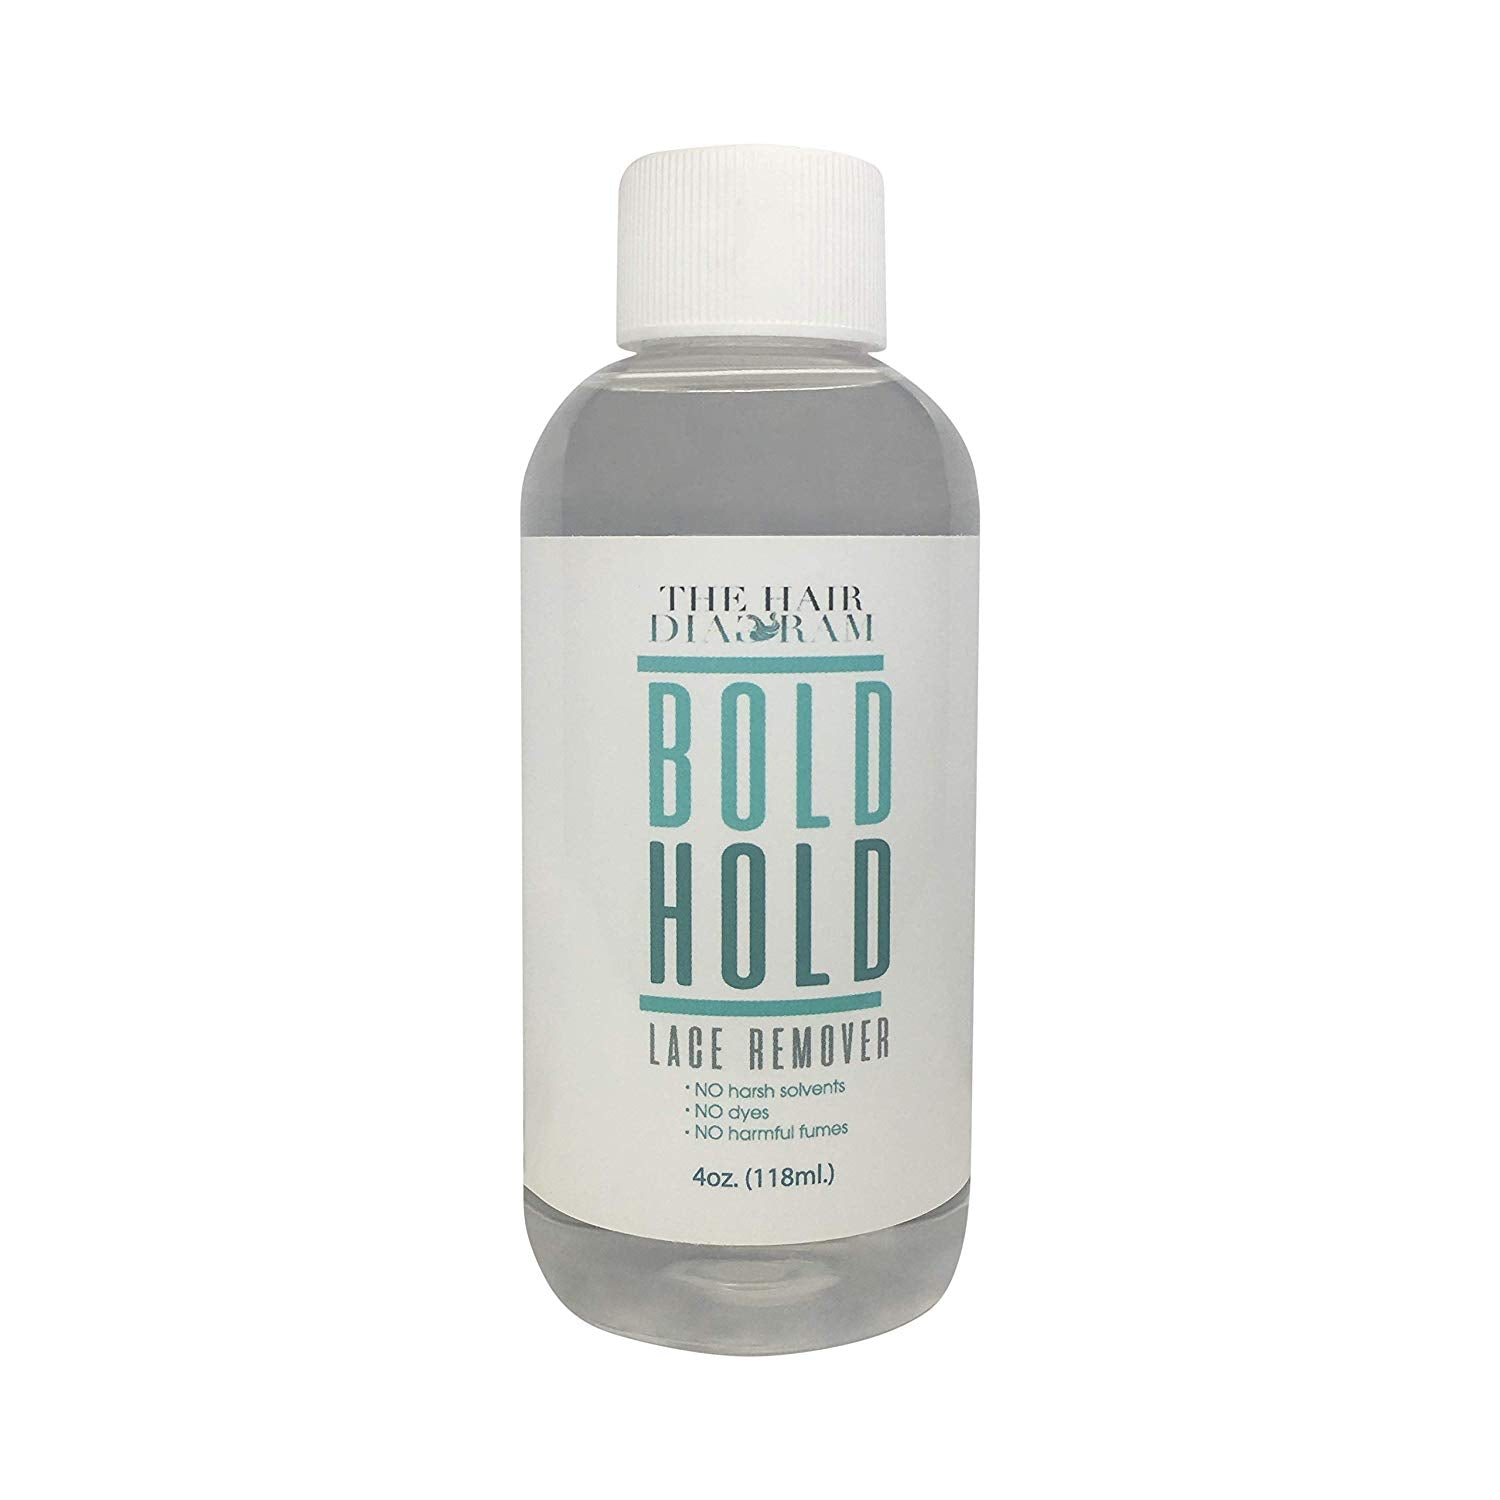 Bold Hold- Lace Remover 4oz